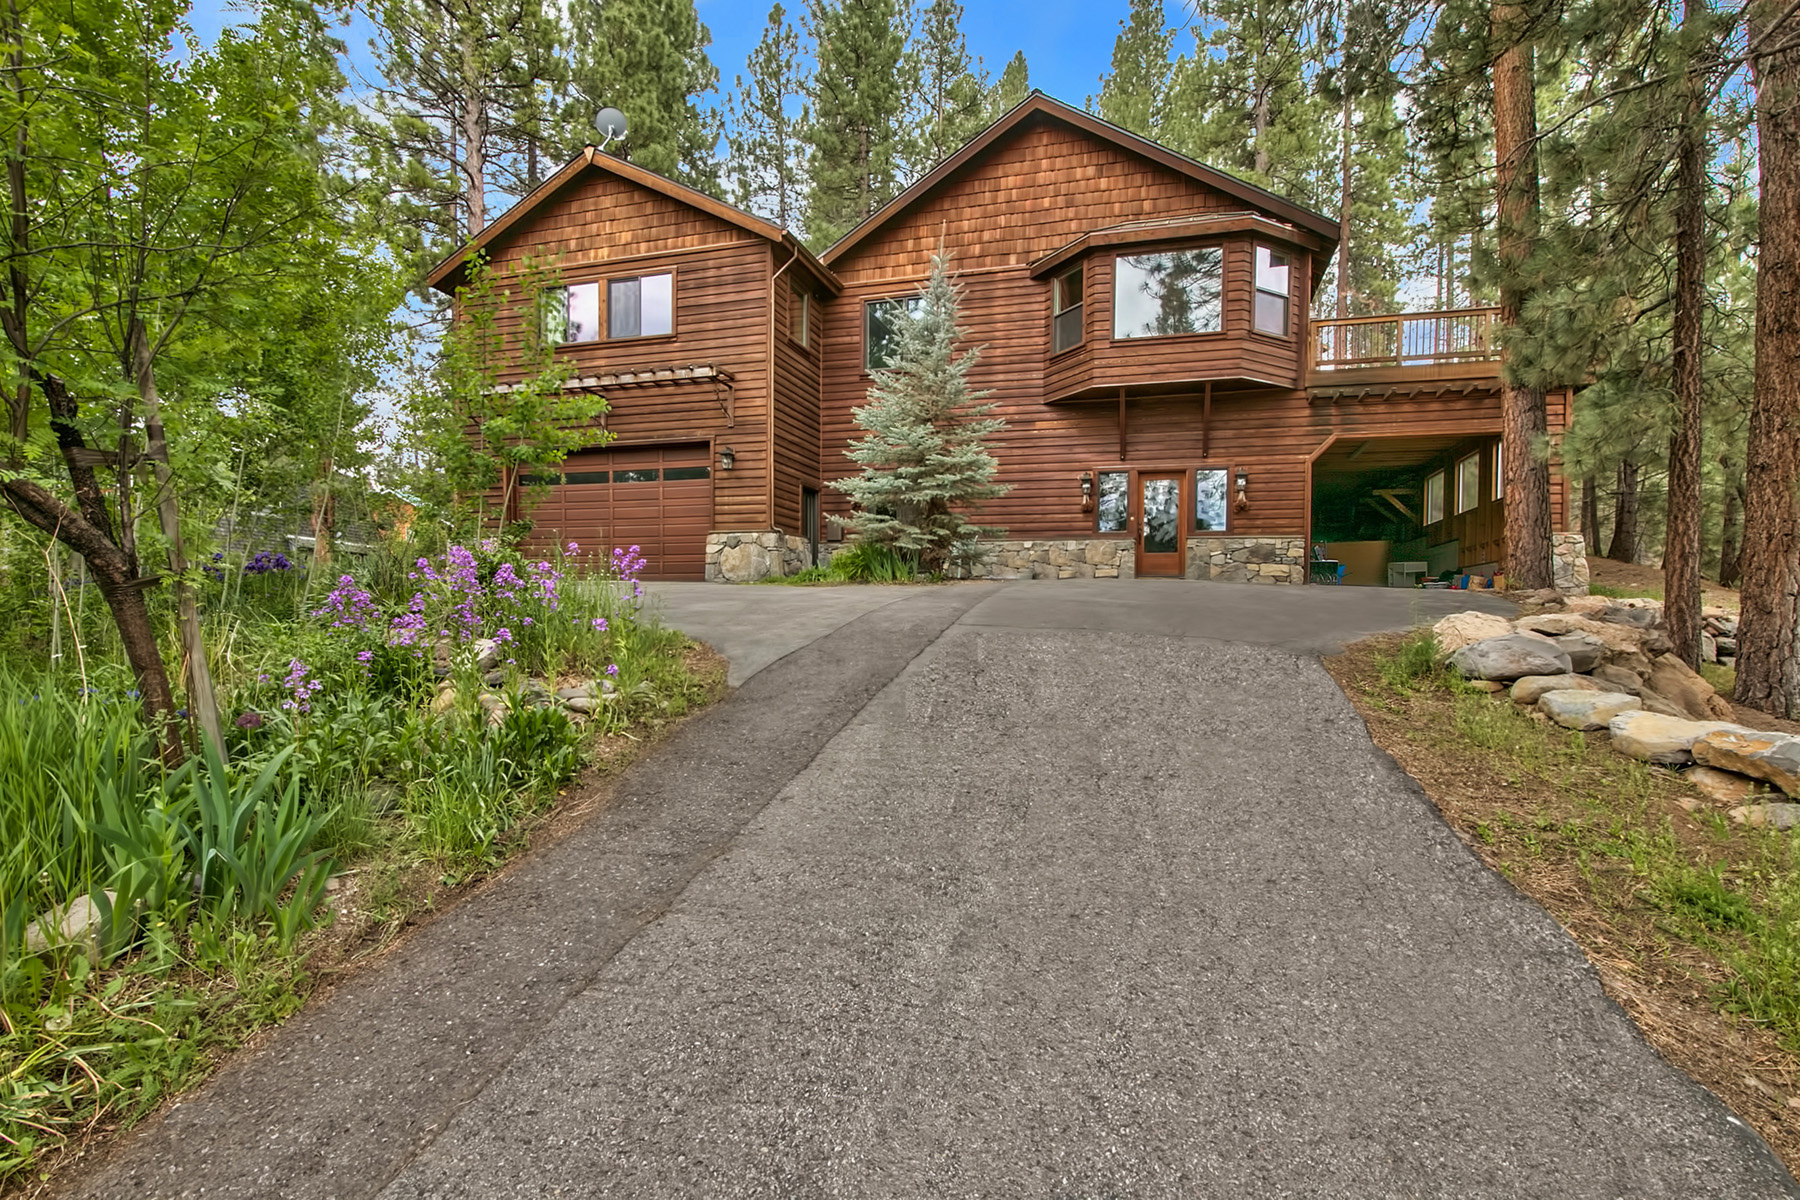 Single Family Home for Active at 10415 Hastings Heights 10415 Hastings Heights Truckee, California 96161 United States